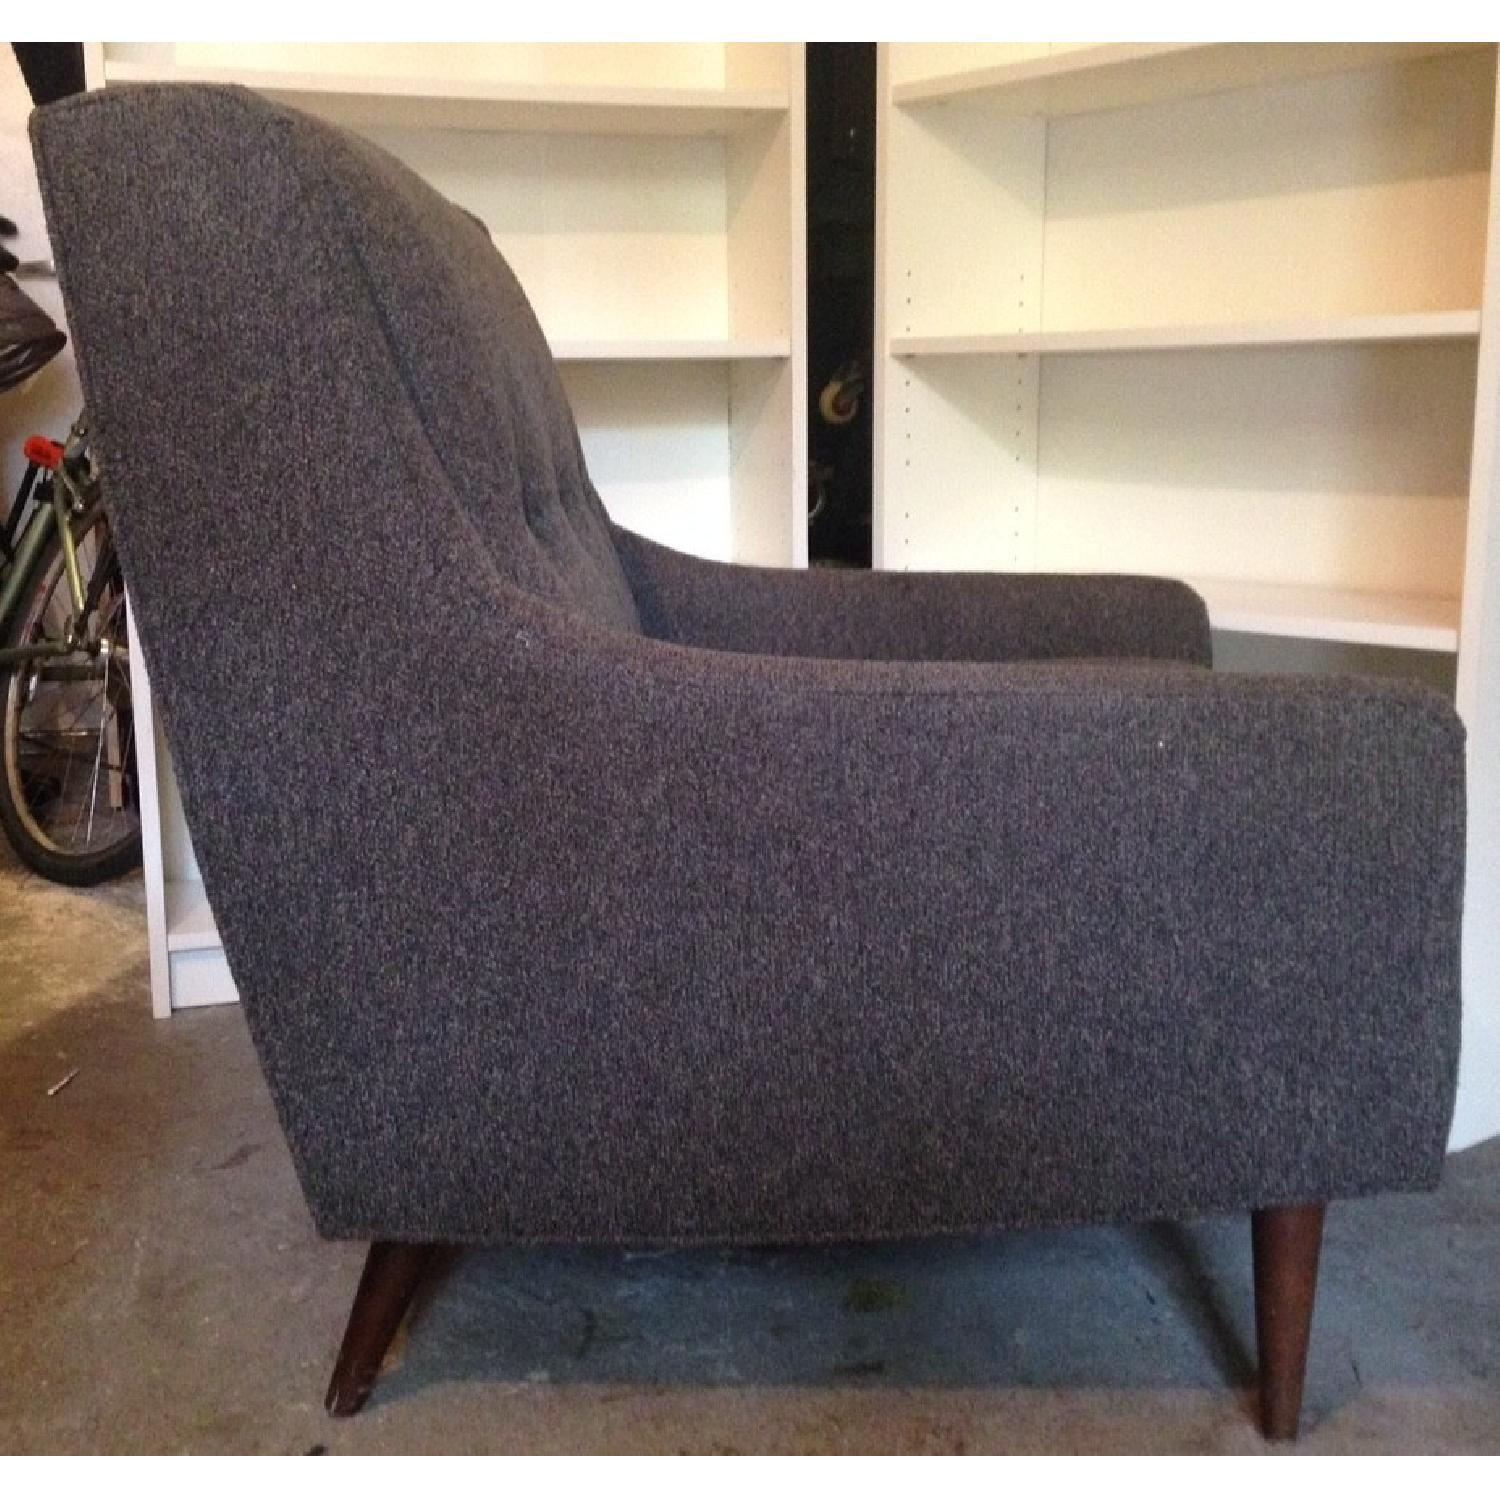 Room & Board Oversized Chair - image-2